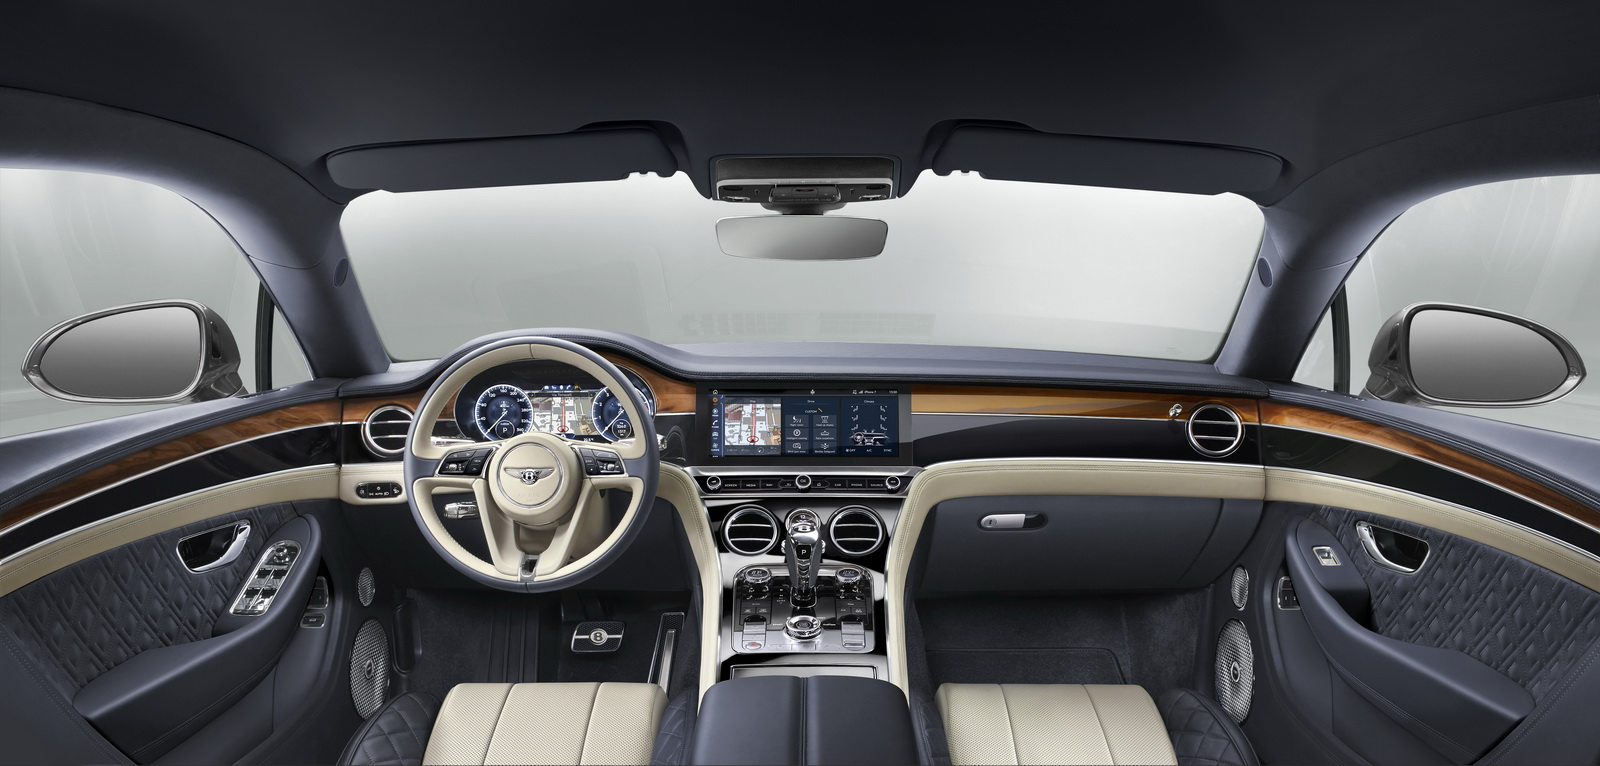 Bentley_Continental_GT_Bang_&_Olufsen_05